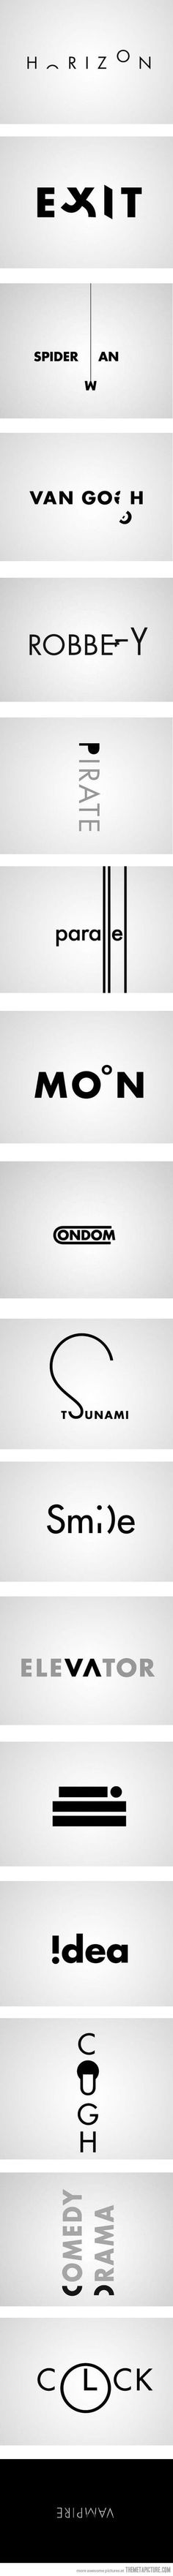 Clever logos - The Meta Picture